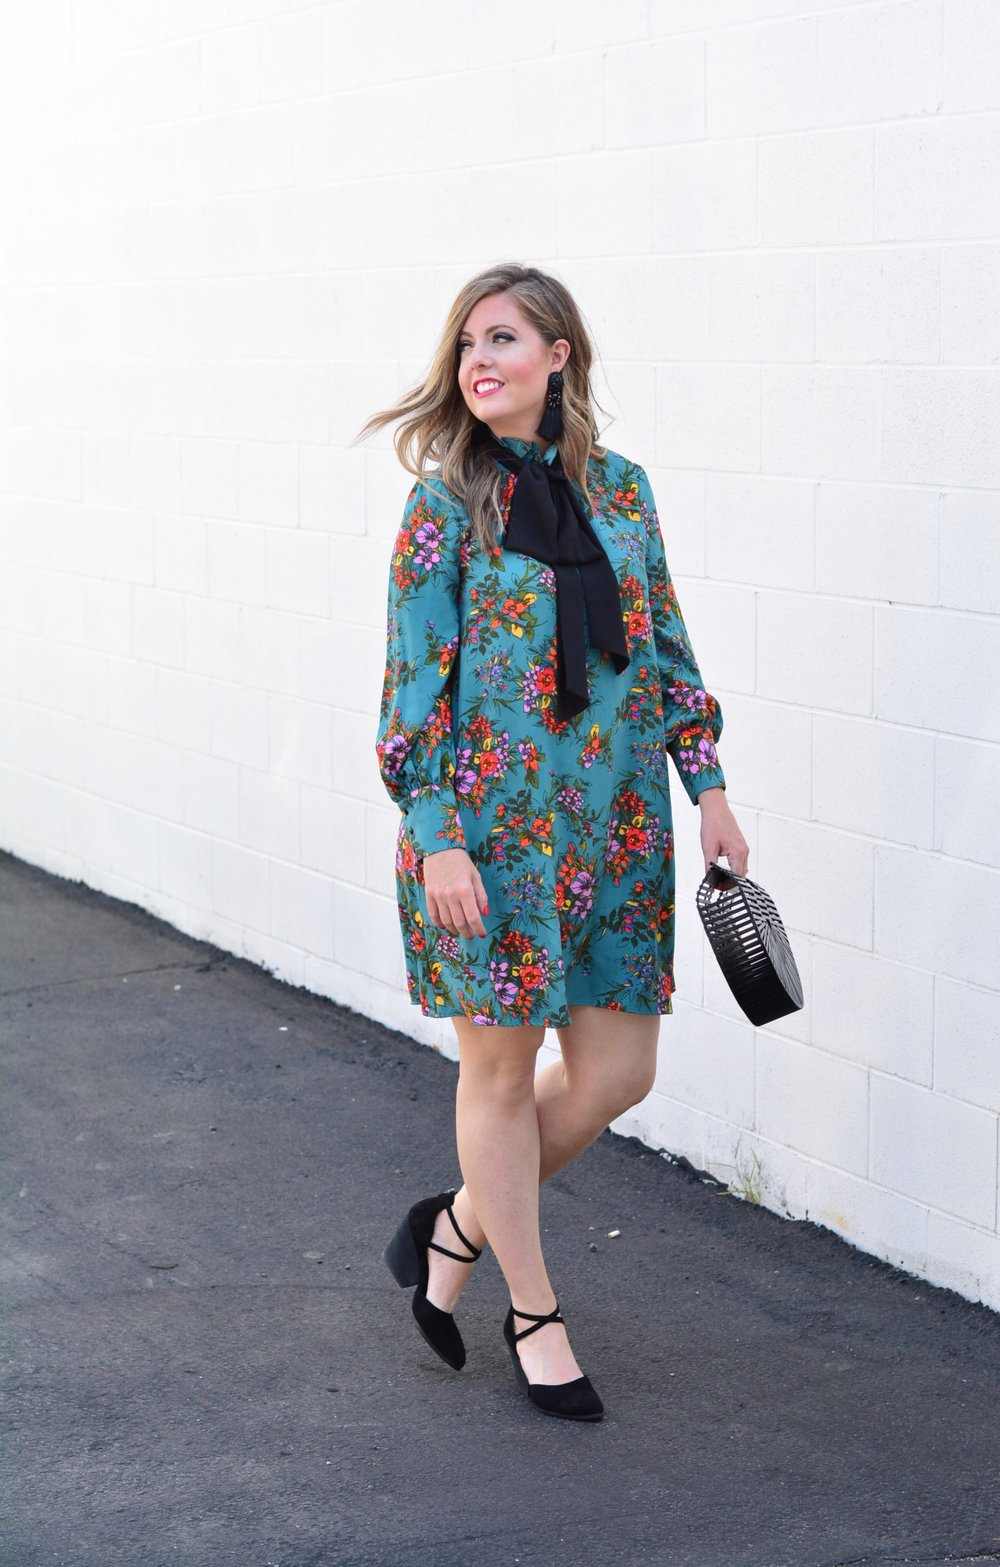 Floral Dress for fall and how to wear it now